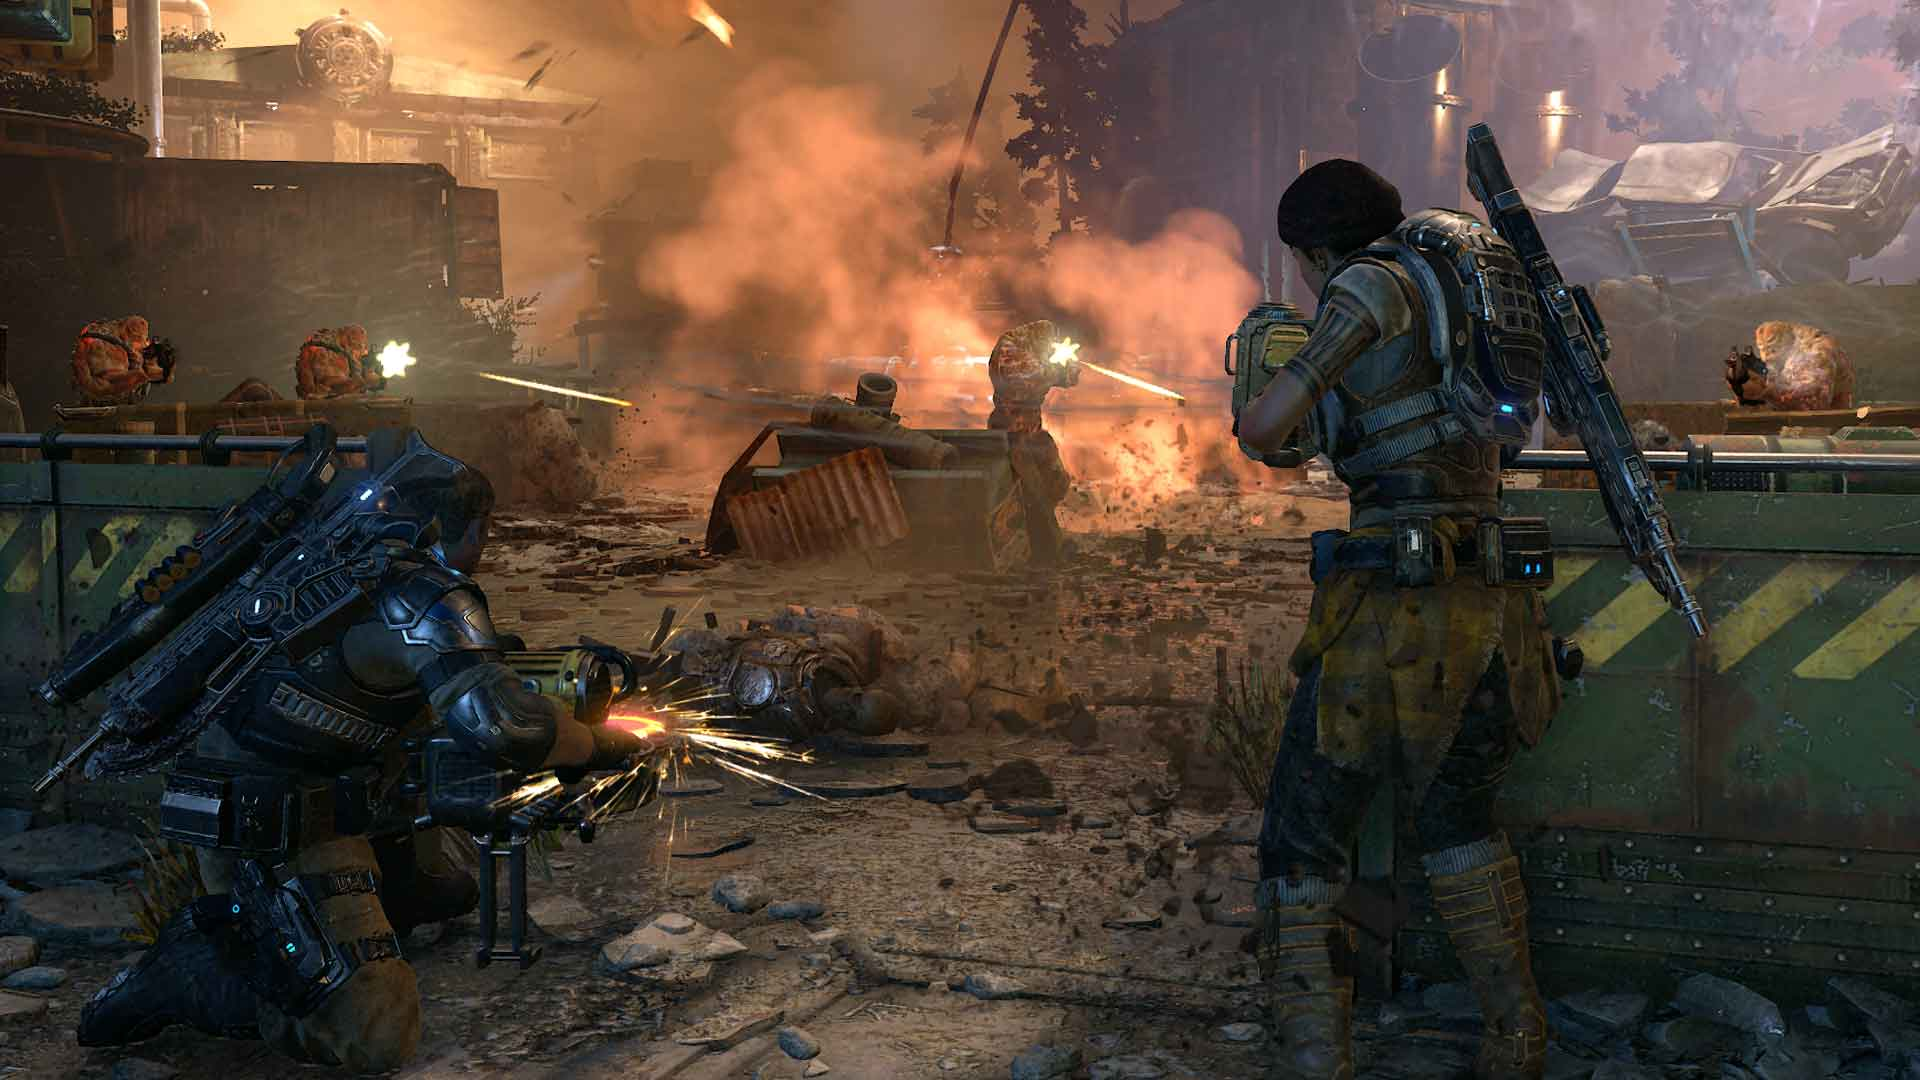 gears-of-war-4-review-screenshot-2